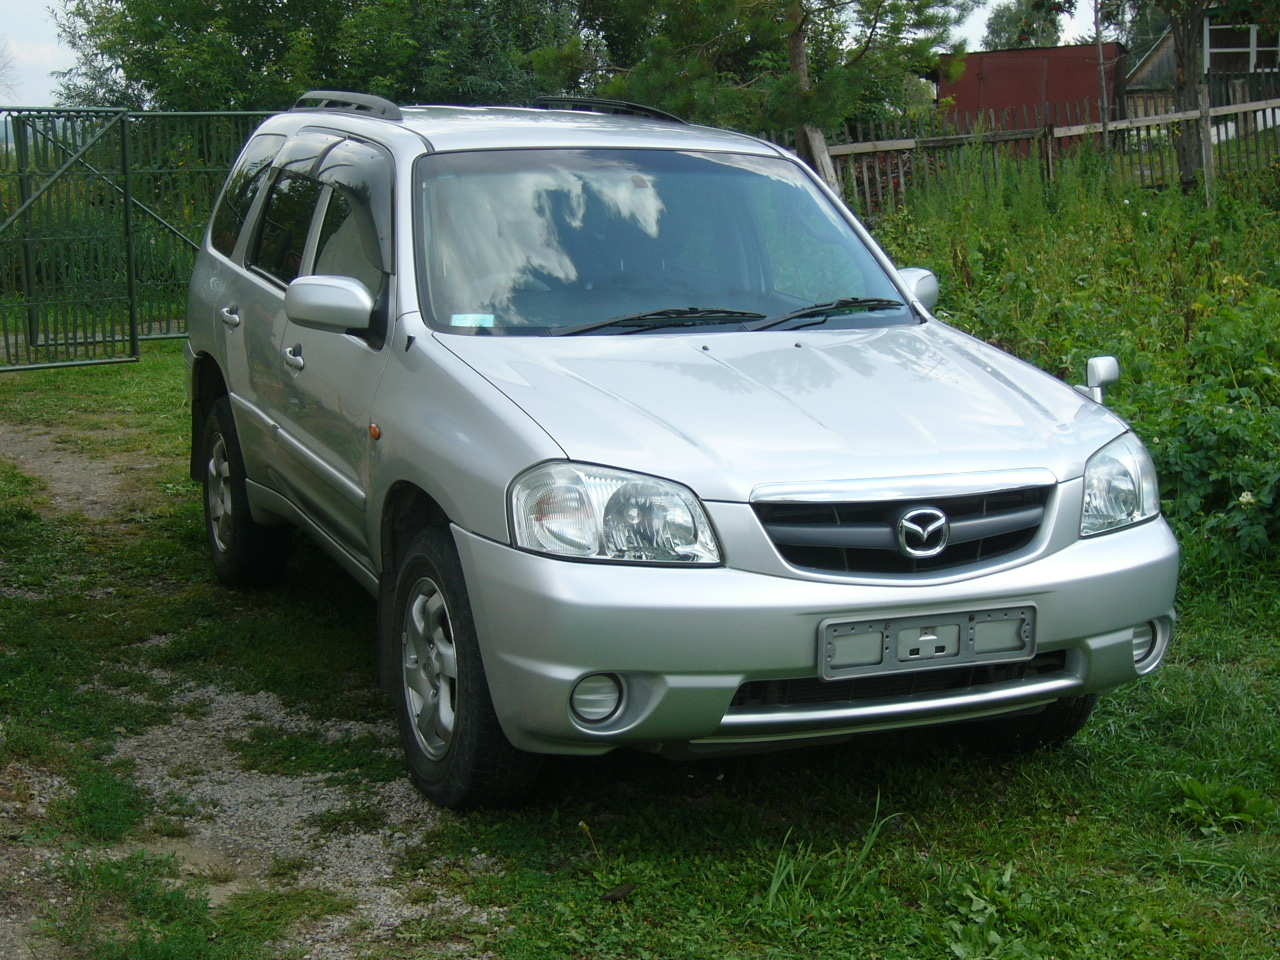 Photo 1 enlarge photo 1280x960 2002 mazda tribute pictures